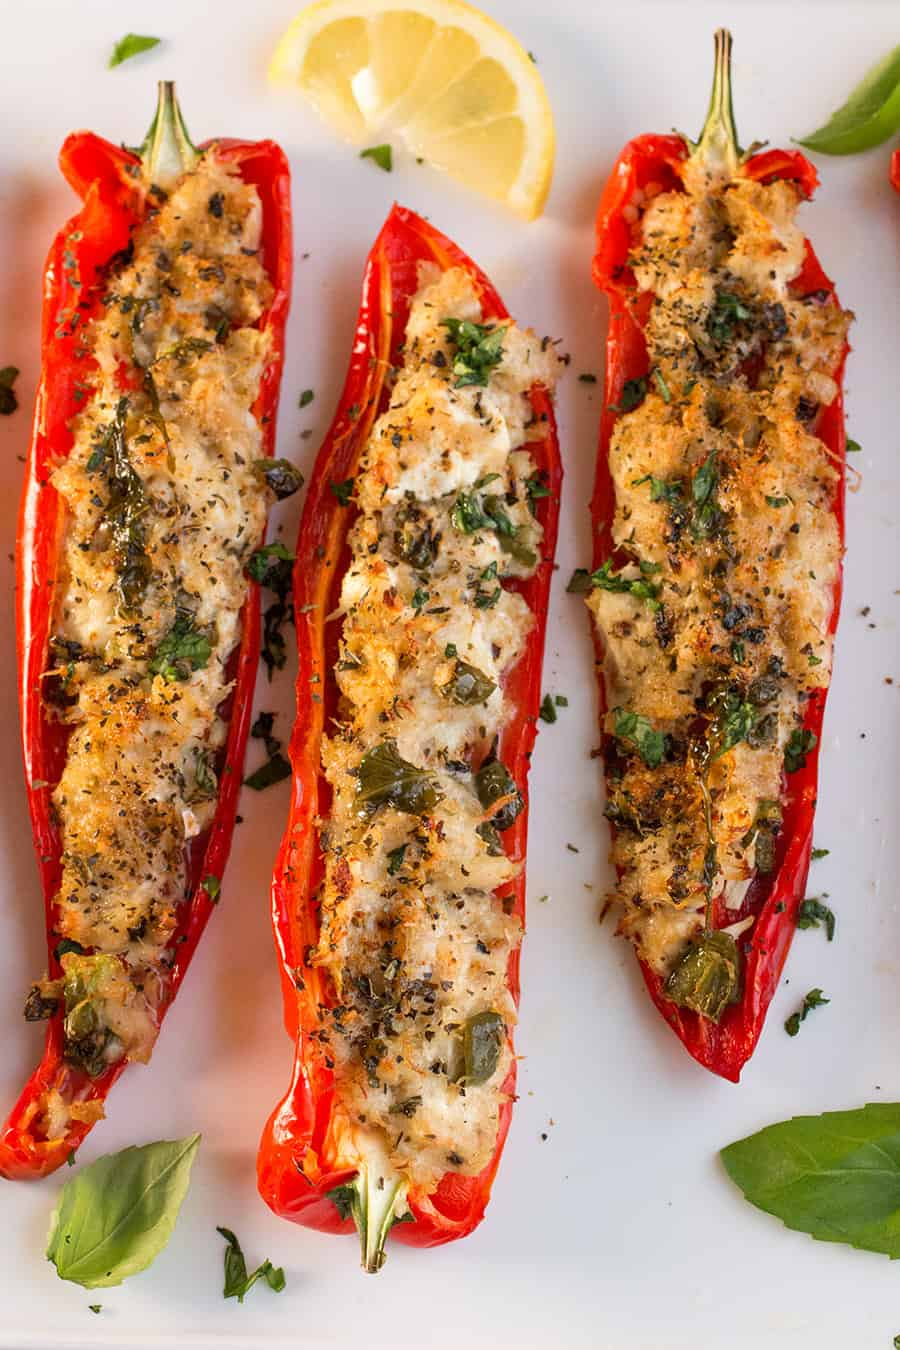 Crab Stuffed Peppers with Lemon-Basil Butter